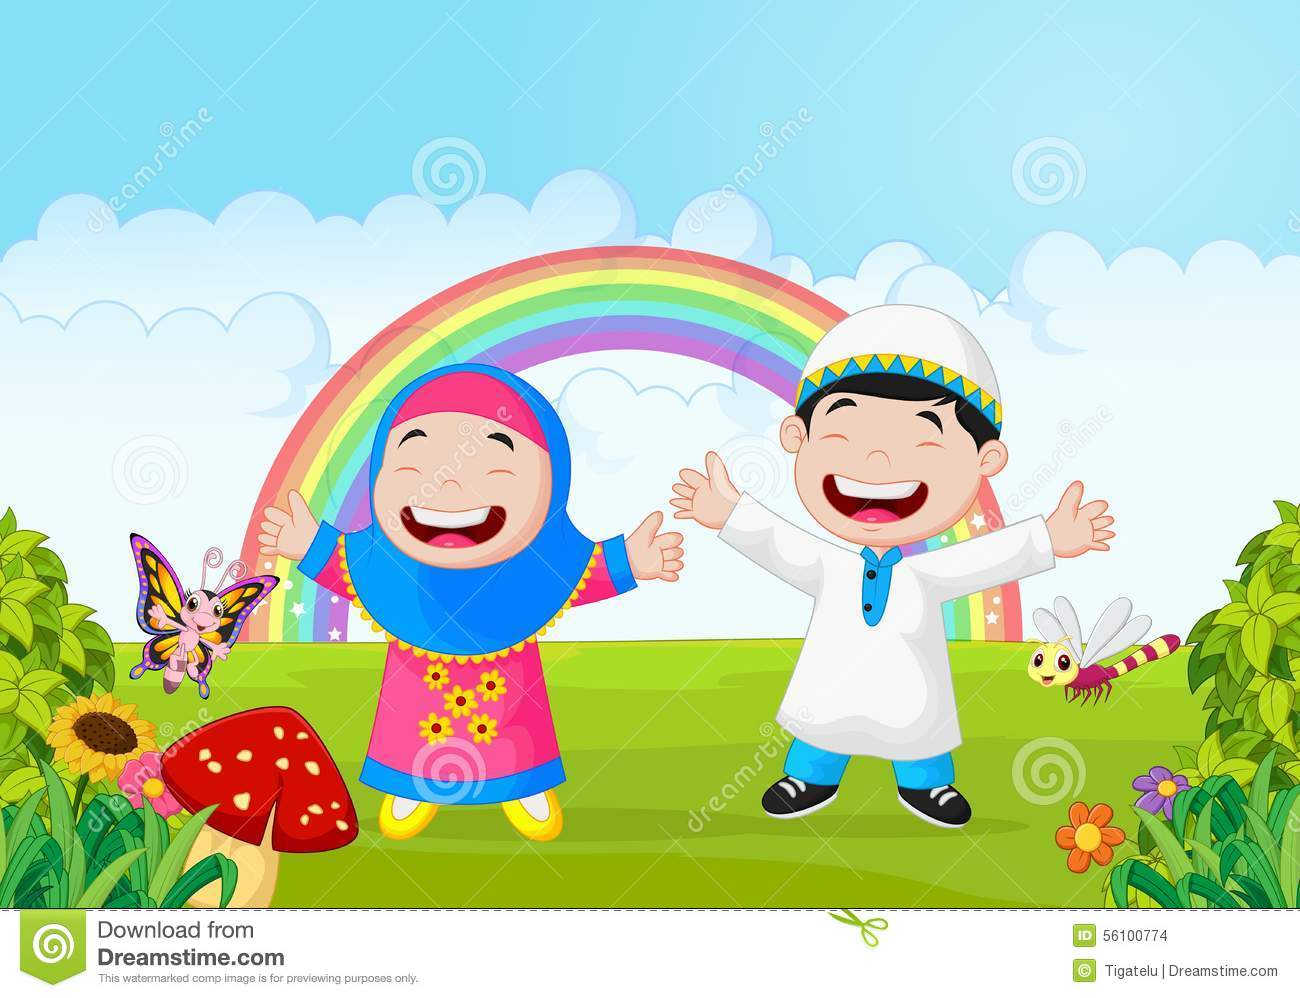 happy jack muslim girl personals Welcome to the fastest-growing of all the muslim matrimonials sites on the  internet salaamlovecom is an arab personals site dedicated to helping  muslims.